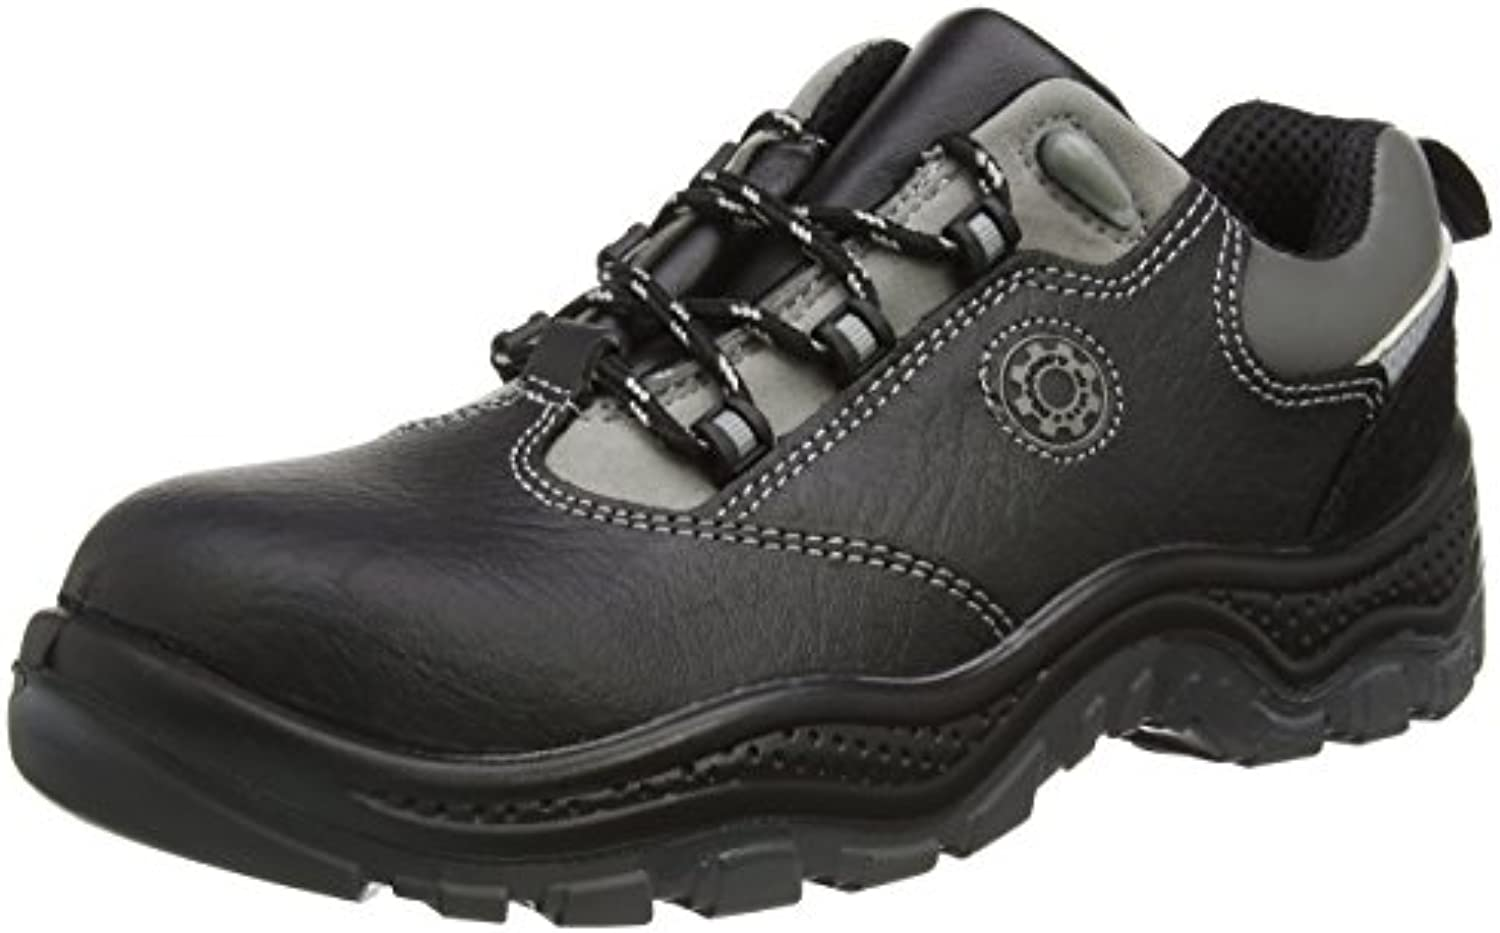 Security Line 4117 - Botas de Cuero Adultos Unisex, Color Negro, Talla 46